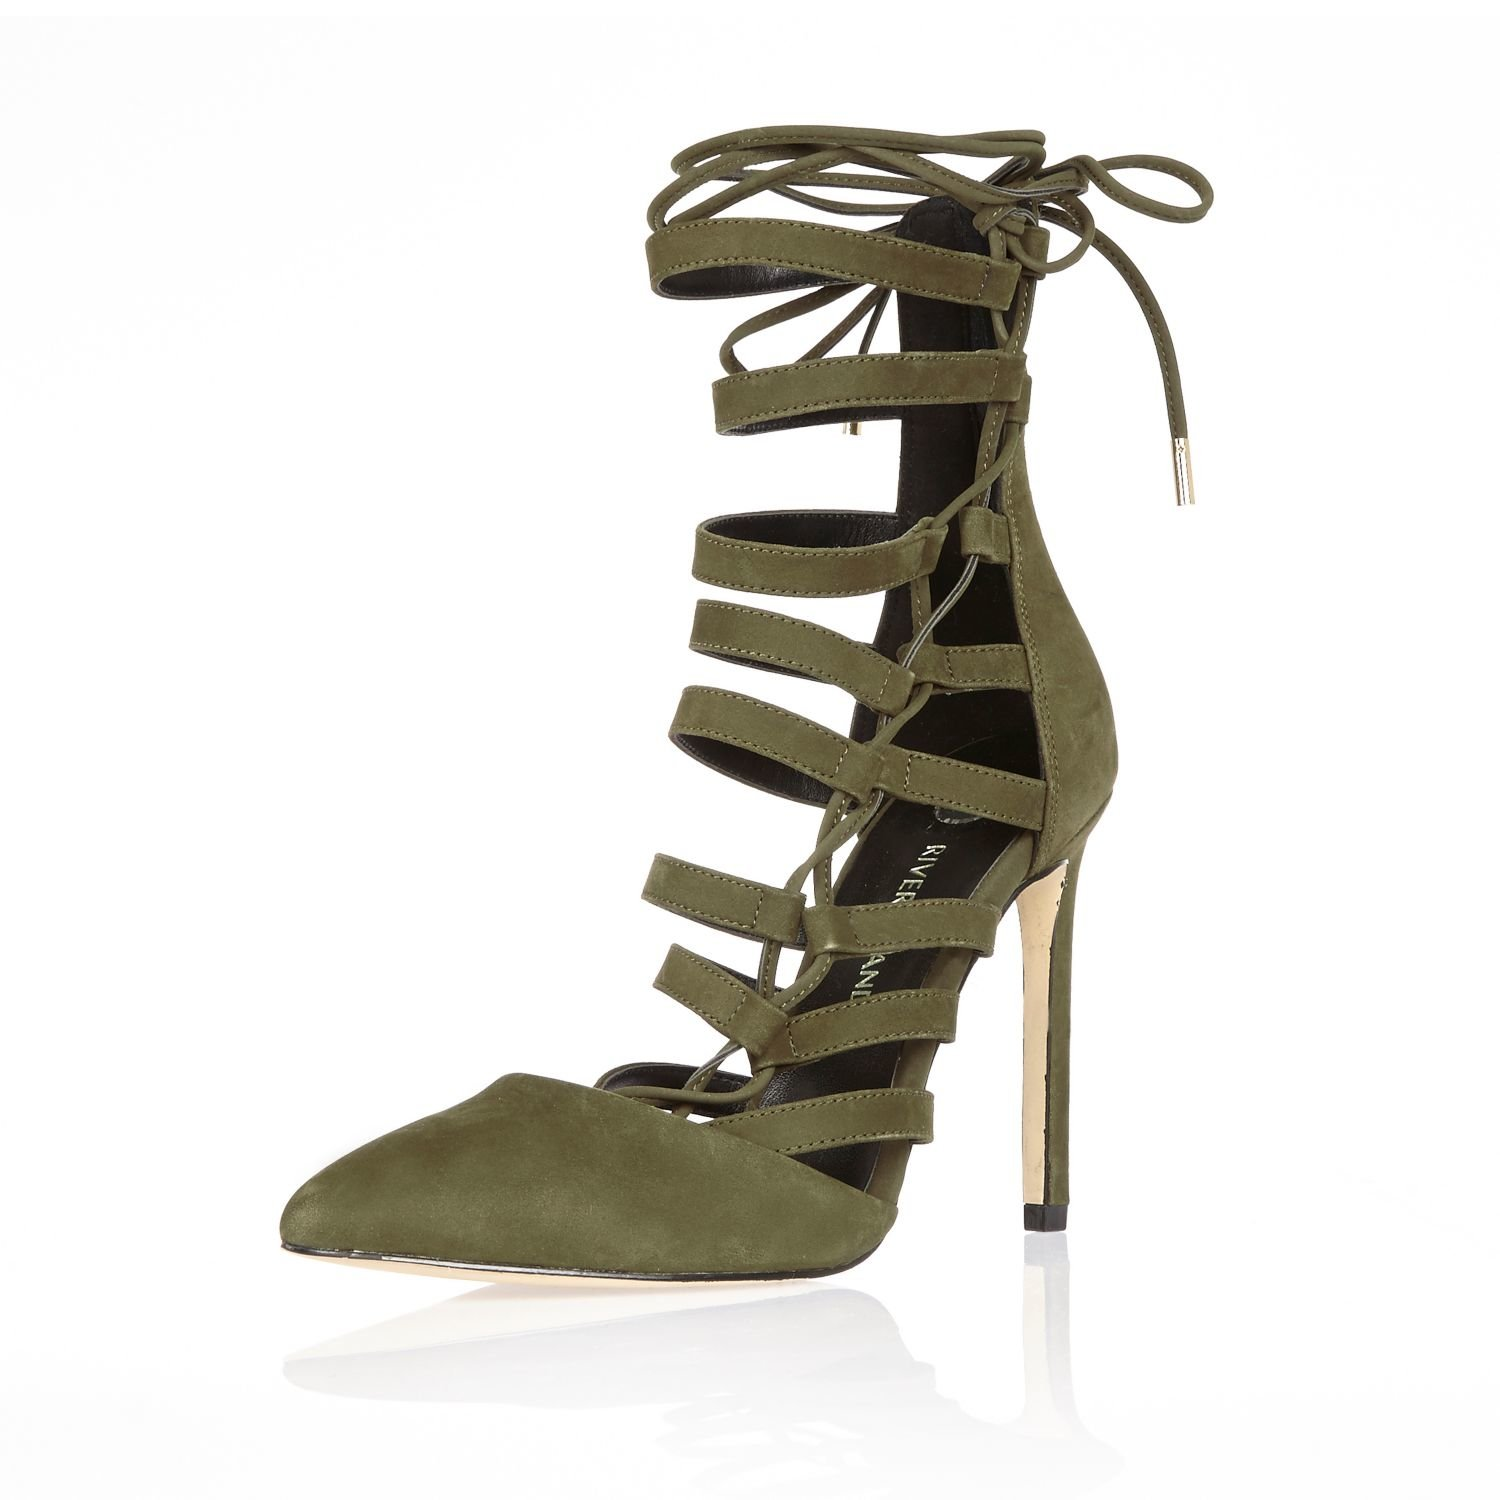 4000bfd99 River Island Khaki Leather Strappy Lace-up Heels in Natural - Lyst